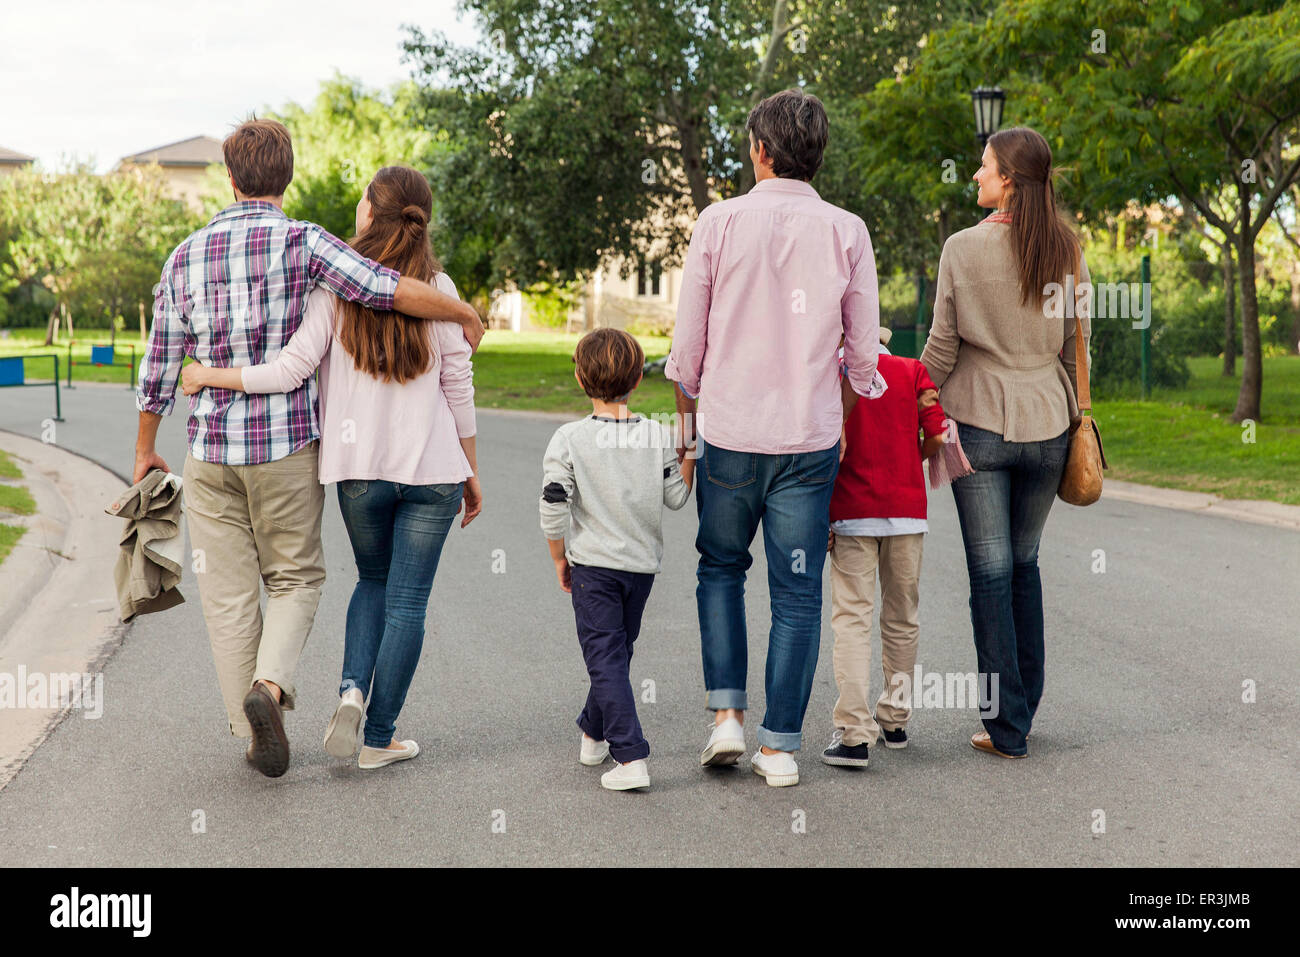 Family walking together in street, rear view - Stock Image